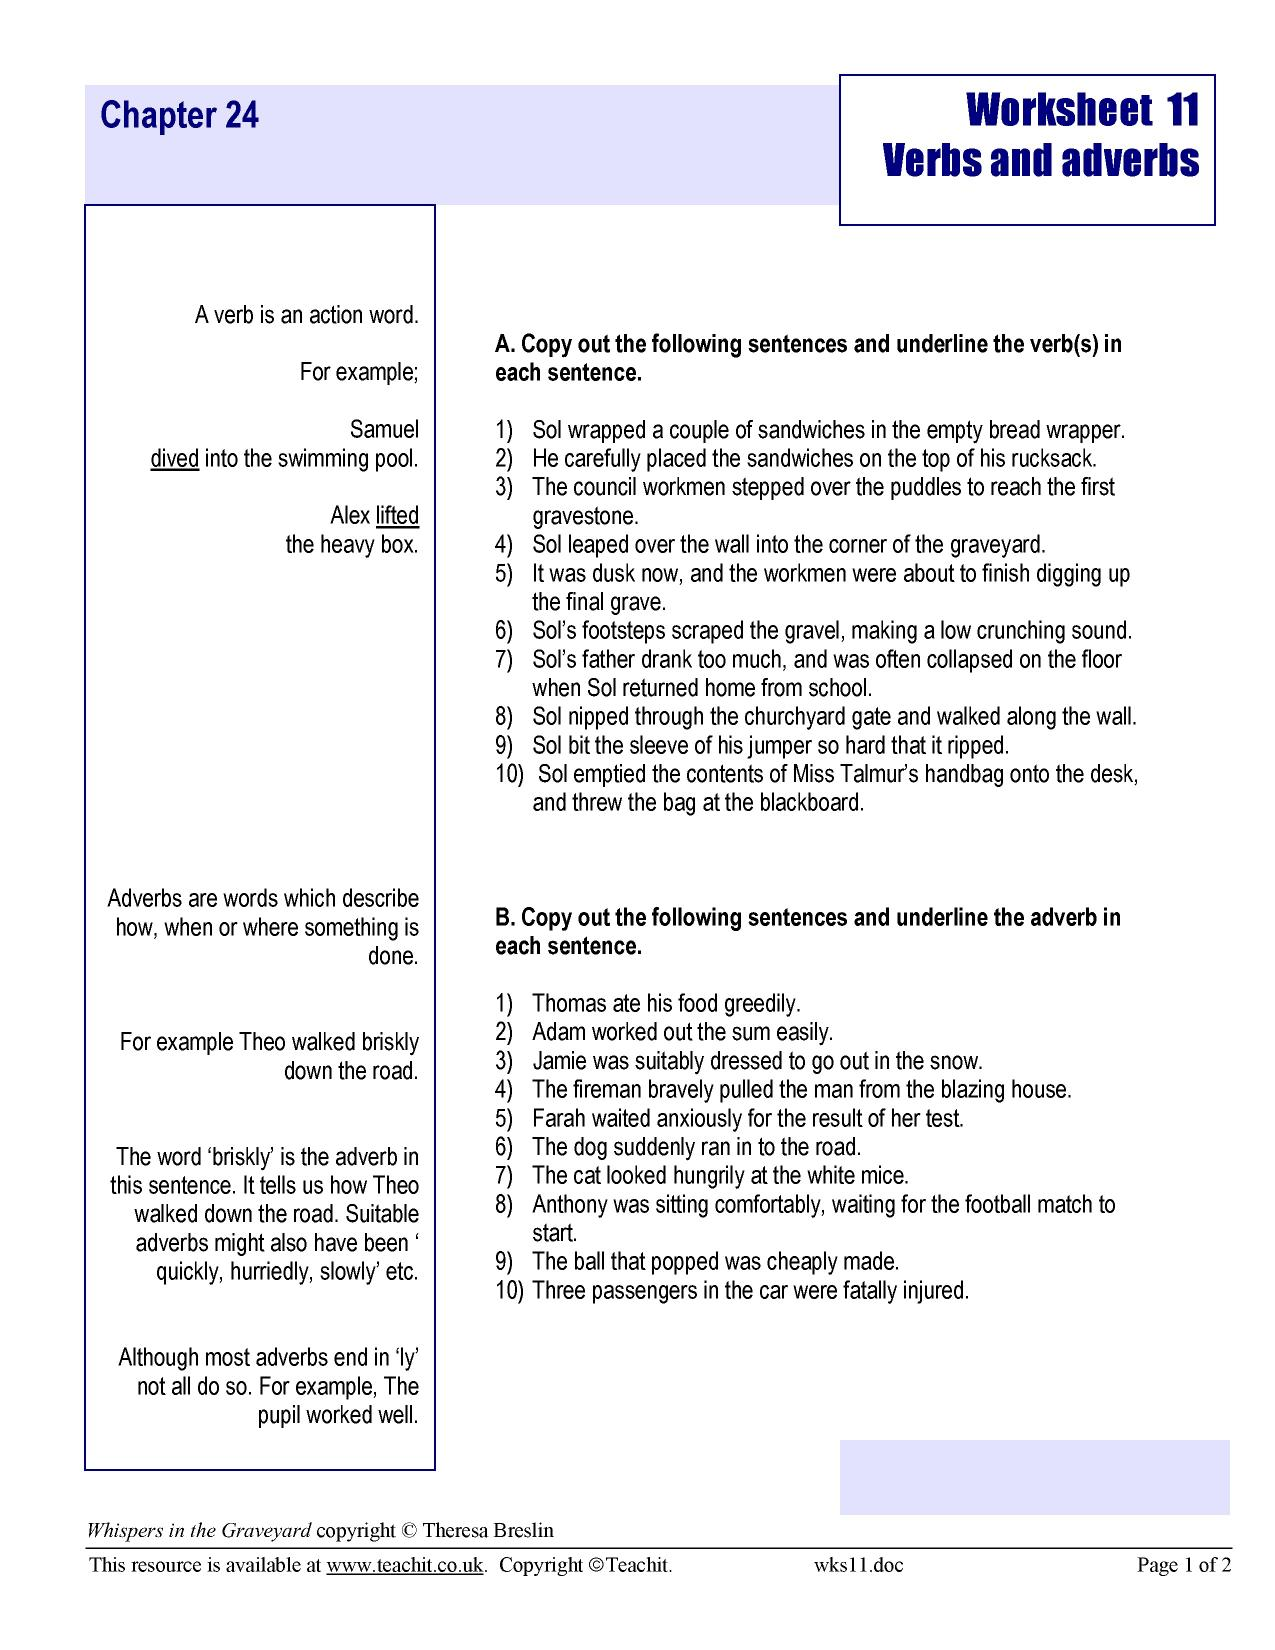 Worksheet 11 - verbs and adverbs * - Whispers in the Graveyard by ...